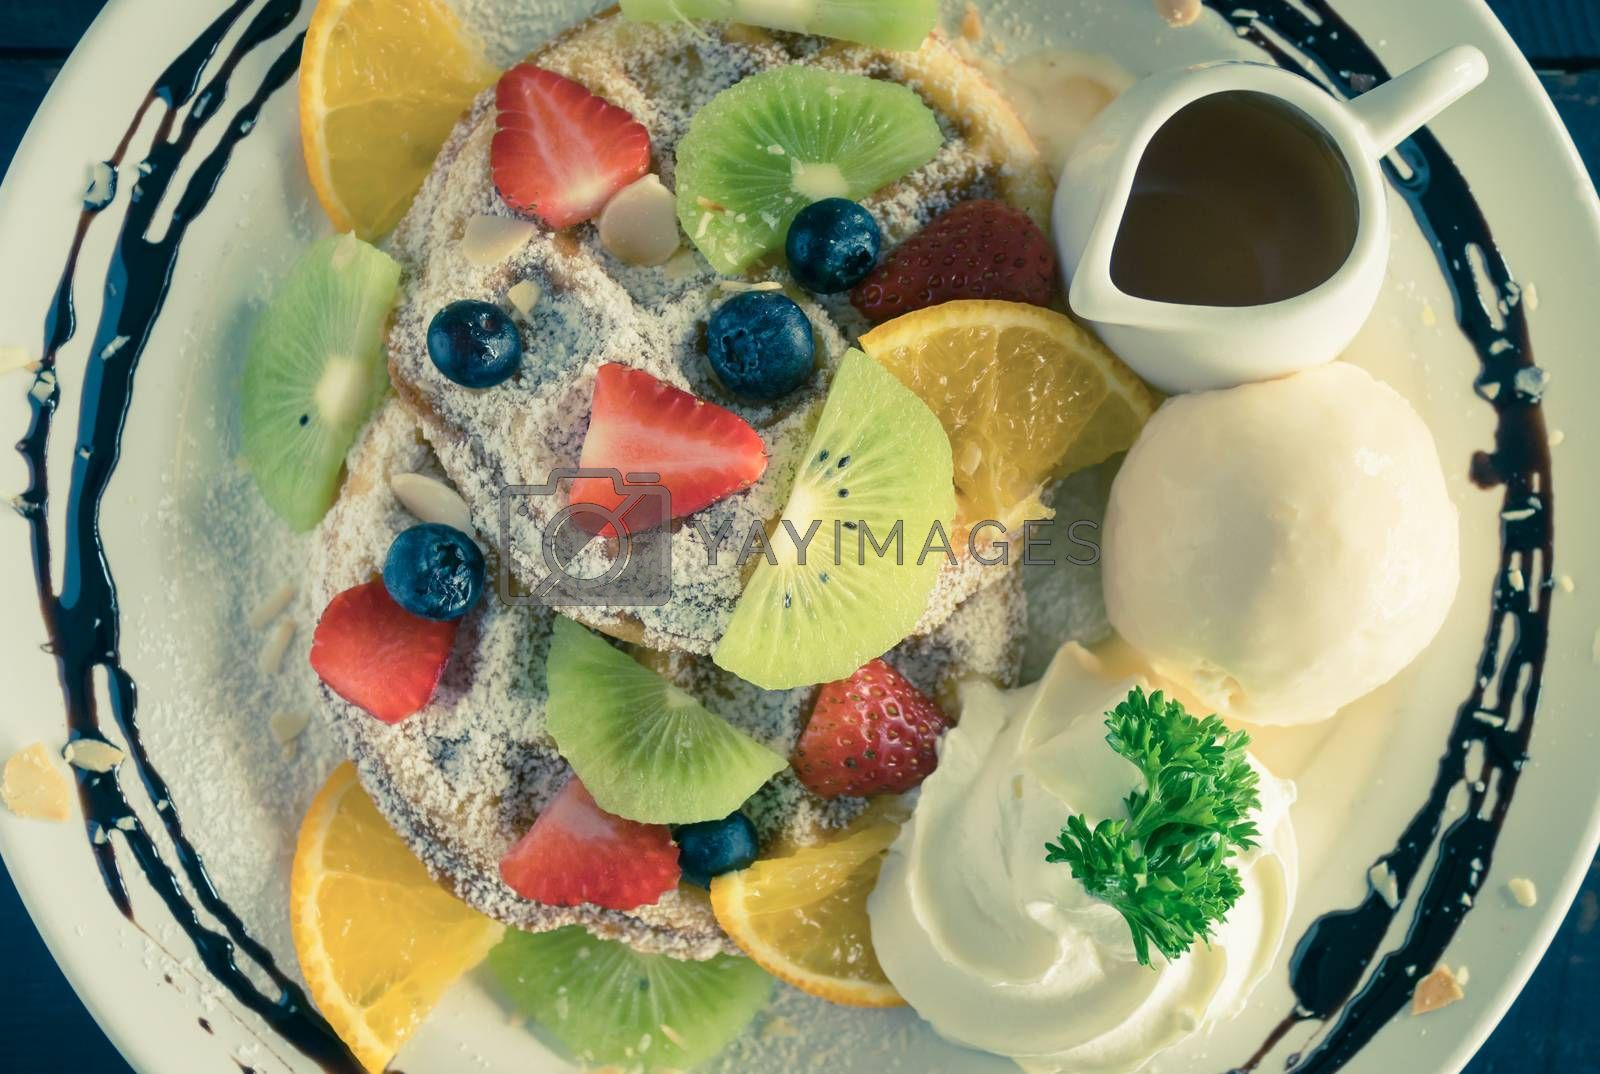 Vintage Flatlay Strawberry Blueberry Kiwi Lemon Waffle Whipped Cream Ice Cream Chocolate and Syrup Dessert. Fruity dessert food and drink category